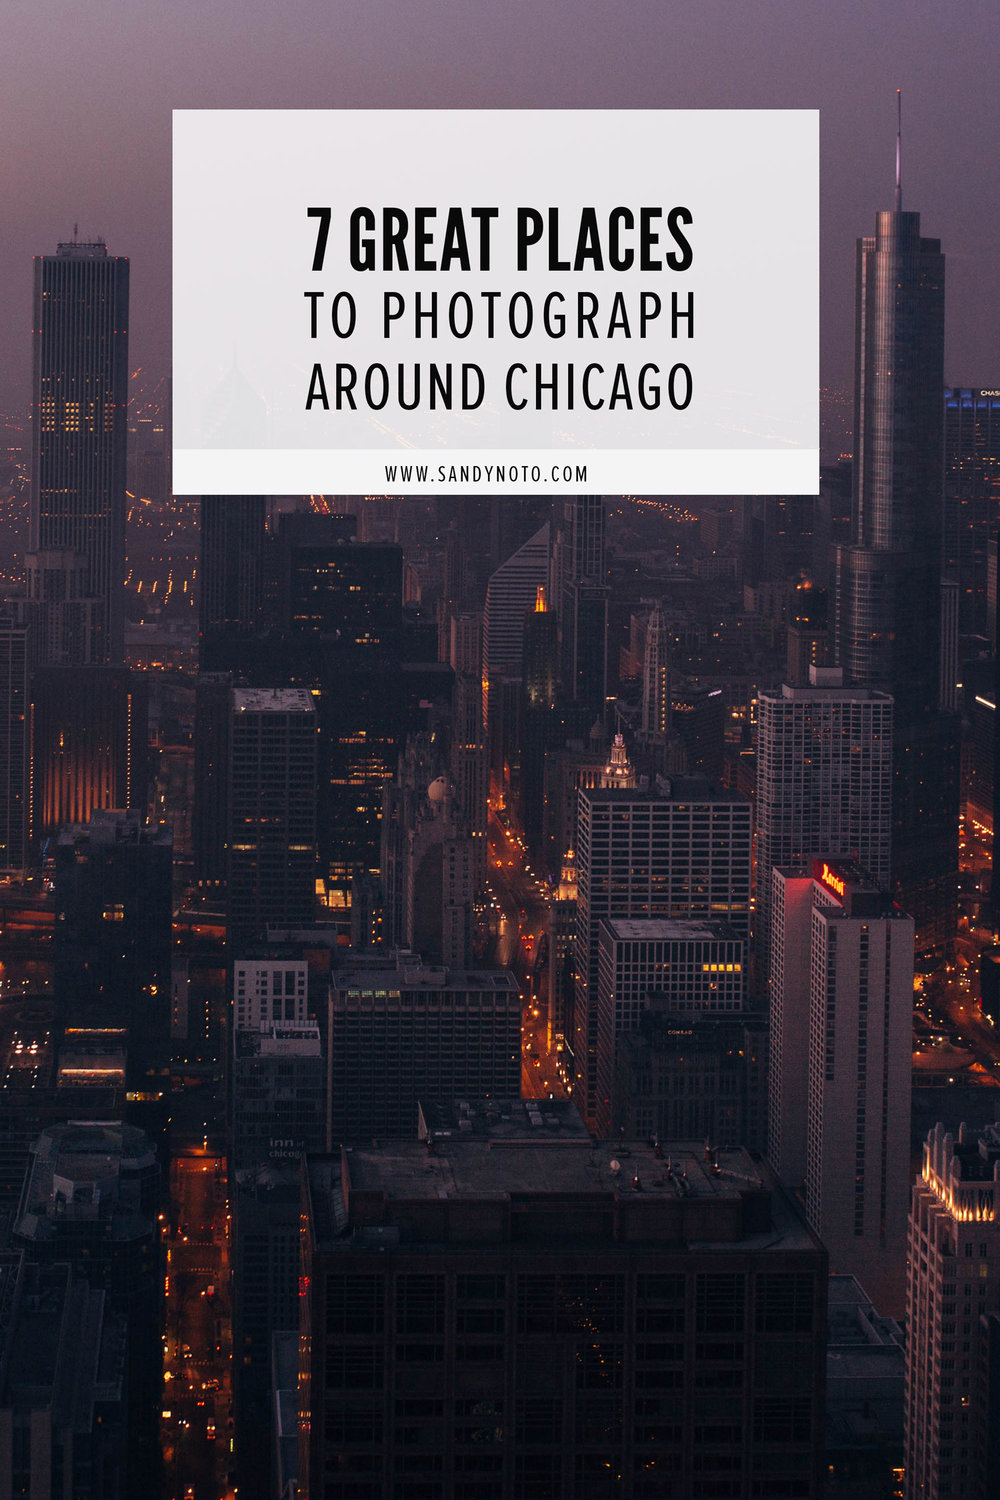 7 Great Places to Photograph Around Chicago